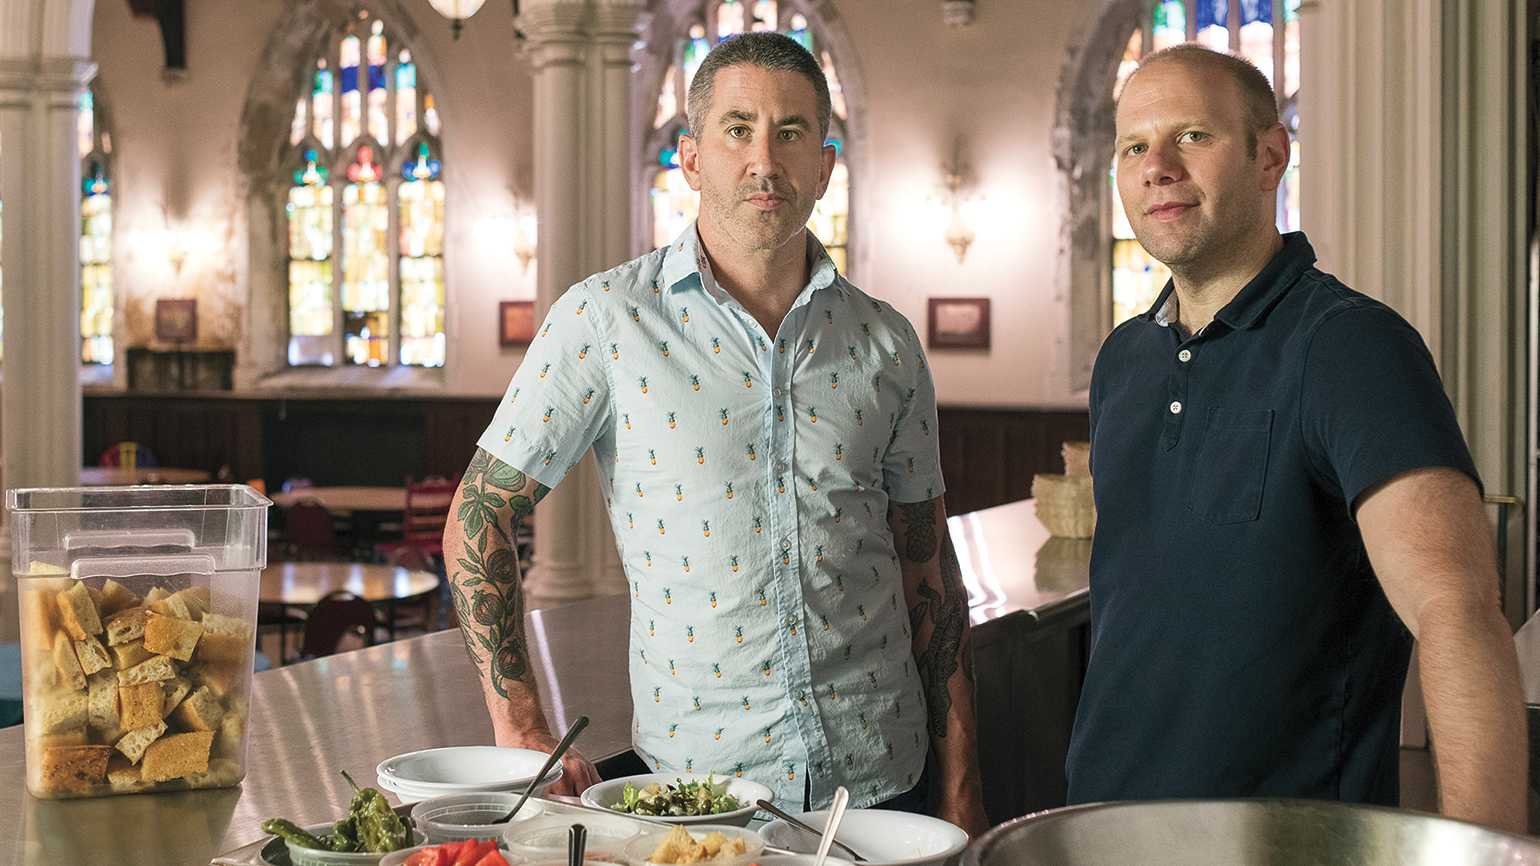 Michael (left) and his business partner, Steven Cook, at Broad Street Ministry in Philadelphia